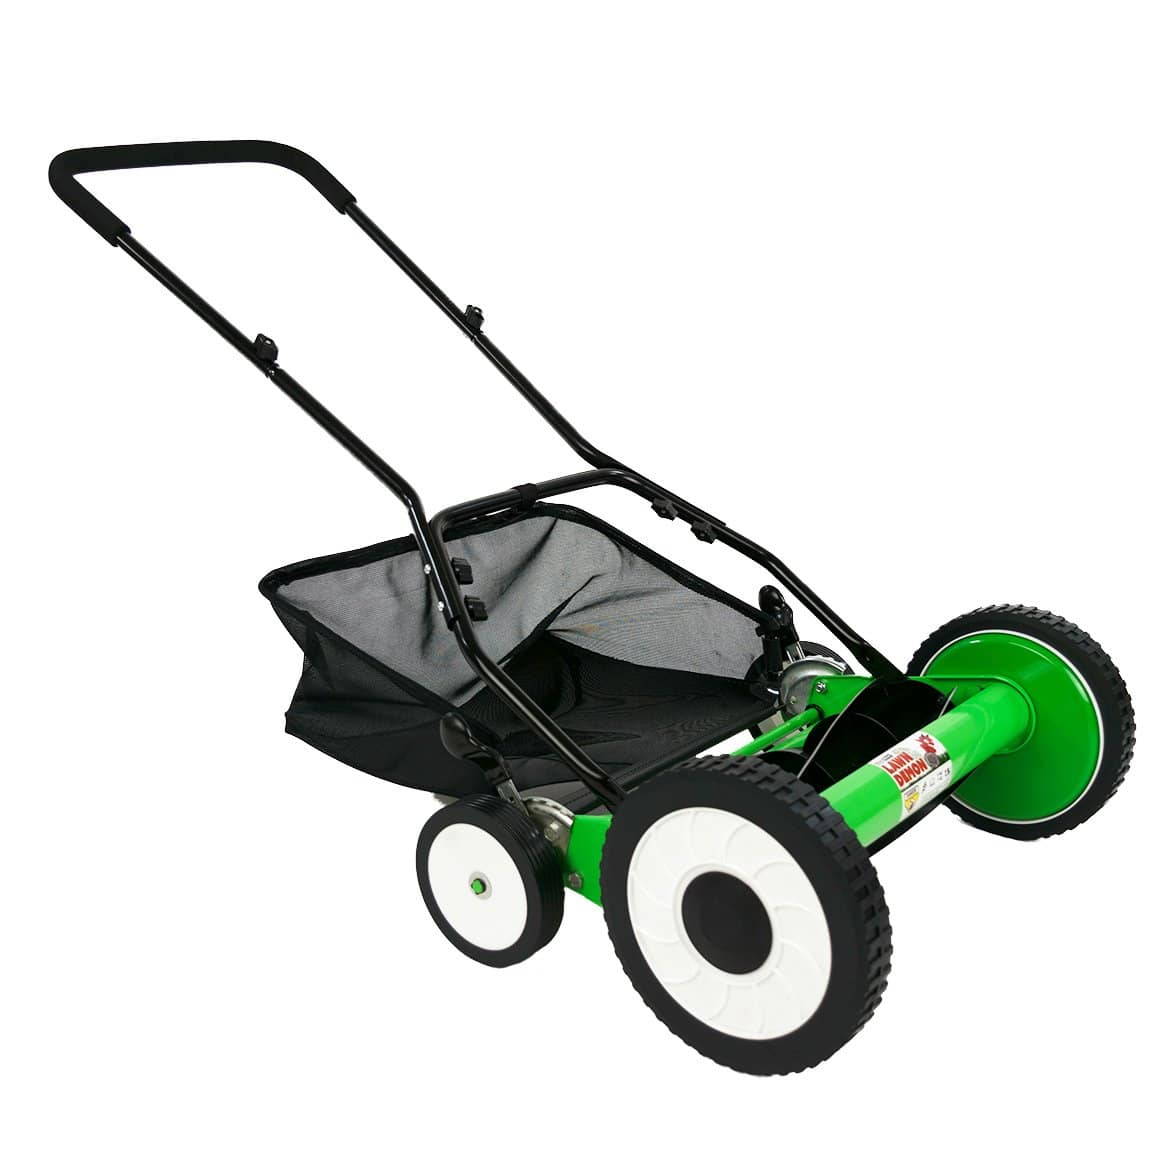 DuroStar 5-Blade Push Reel Mower